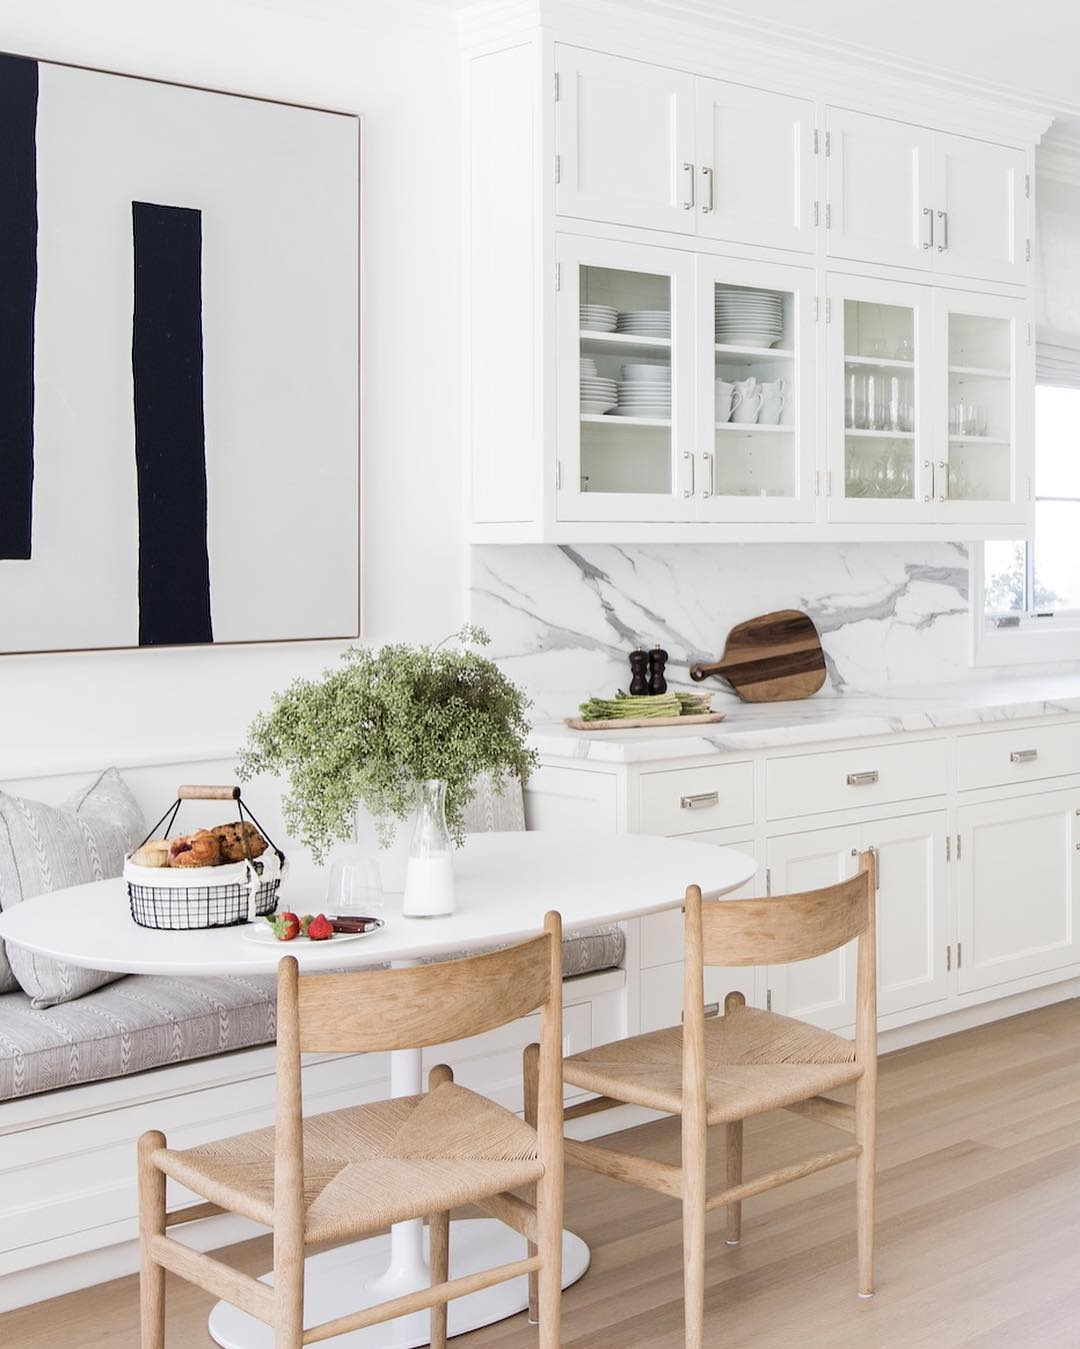 Built In Bench Seating: Banquette Built-In Benches Add Smart Kitchen Seating